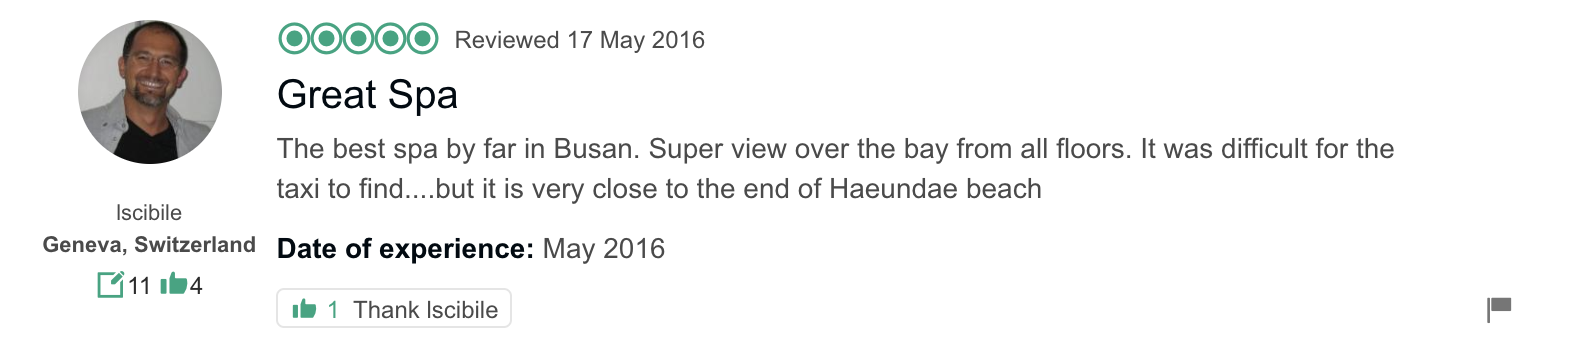 'The best spa by far in Busan. Super view over the bay from all floors. It was difficult for the taxi to find....but it is very close to the end of Haeundae beach.' - Hill Spa Busan Review from TripAdvisor